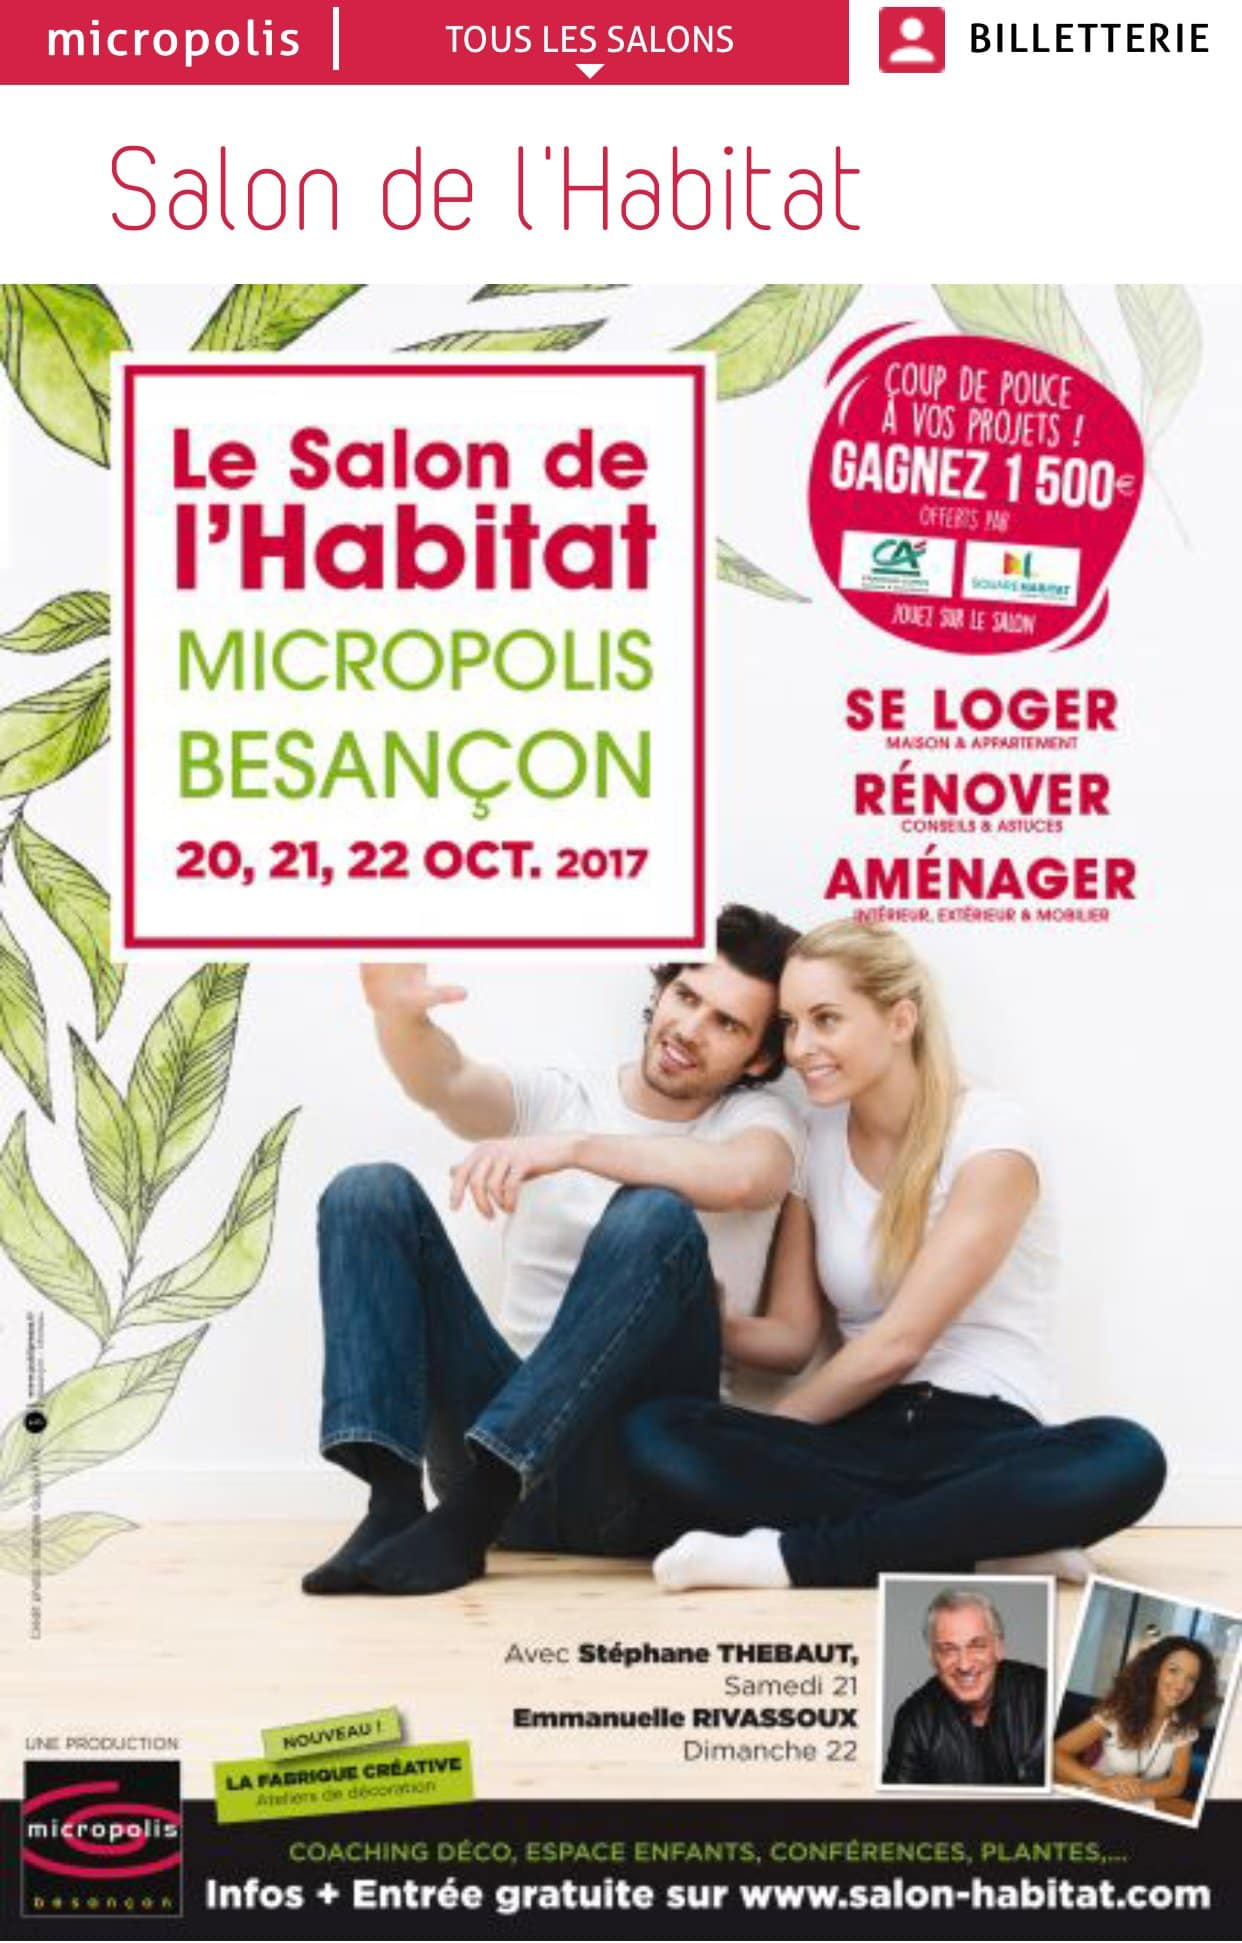 Salon de l habitat besan on 2017 anais expertises - Salon de l habitat lyon ...